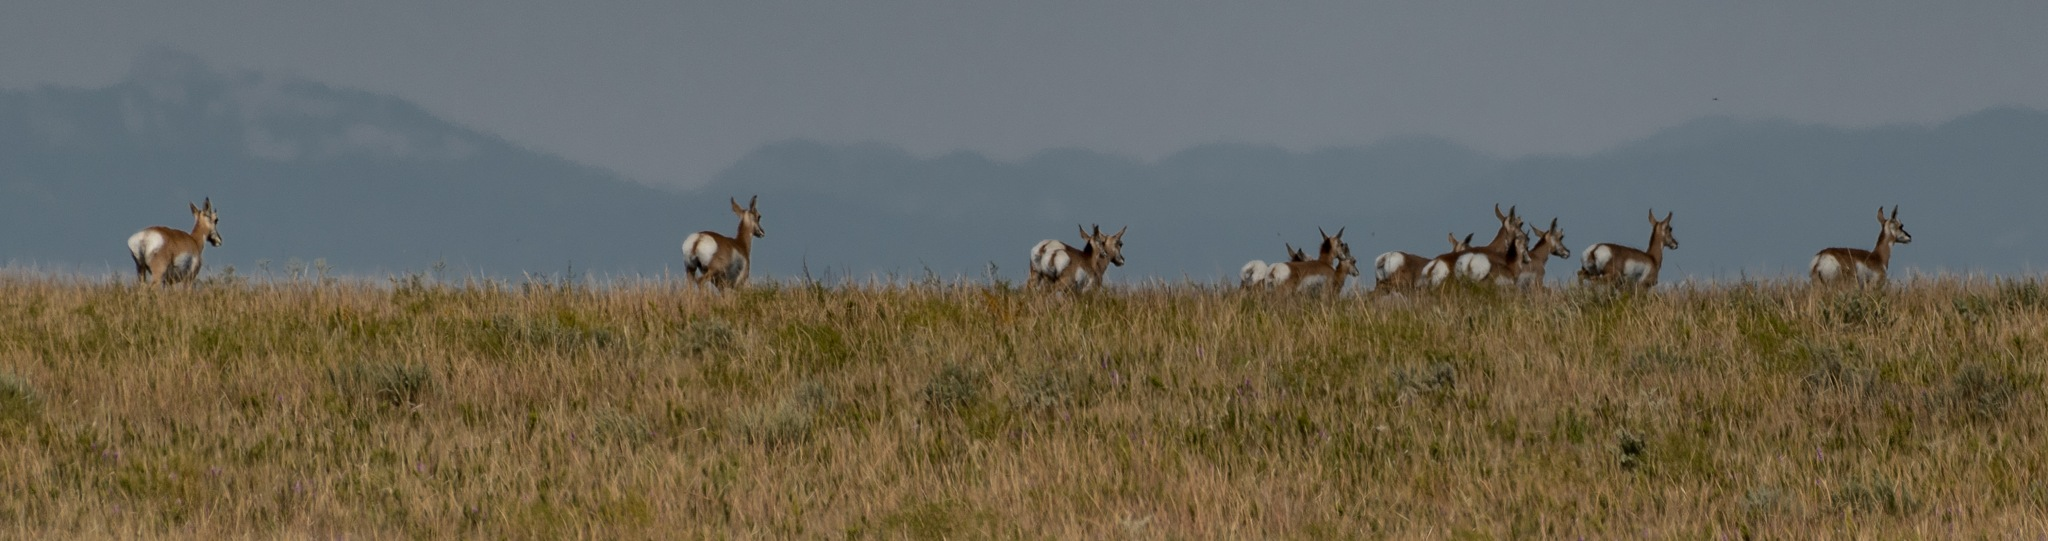 PRONGHORNED ANTELOPES IN RETREAT by DrJohnHodgson